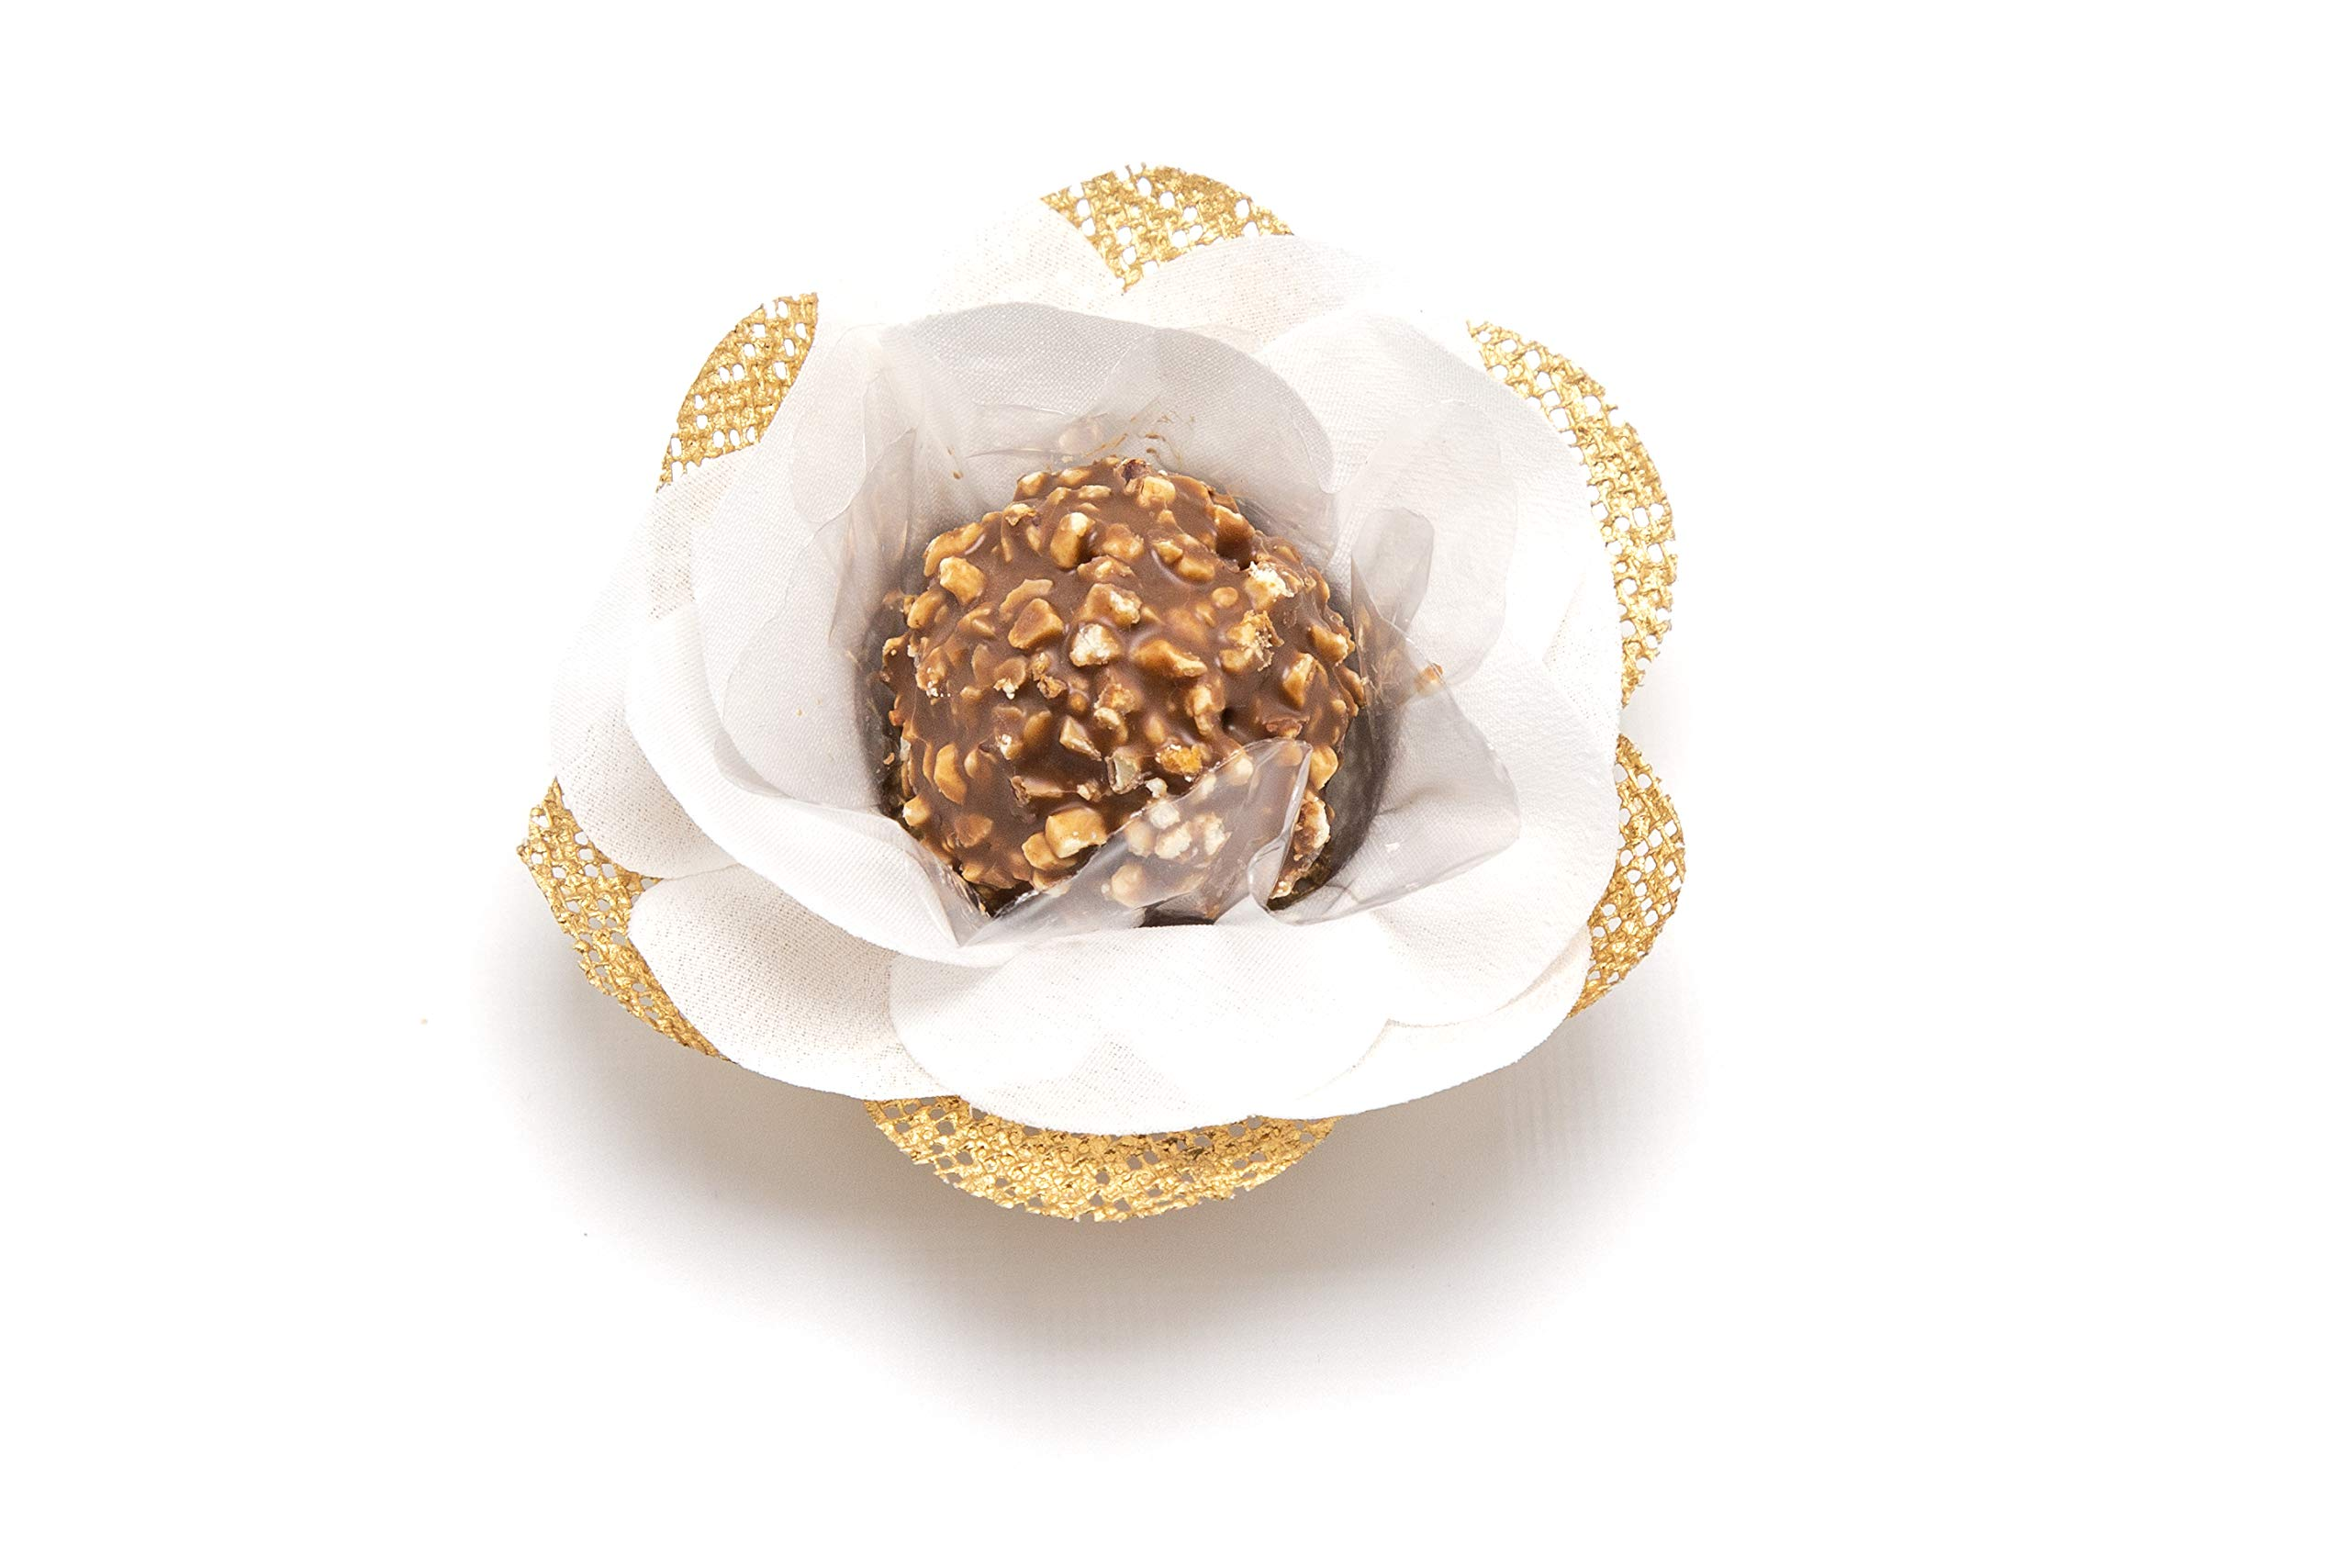 Truffilio Handmade Fabric Truffle Wrappers, Truffle Liners, Truffle Cups for Baby Shower Bridal Shower Birthday Party Wedding - Pack of 20 (Camellia White & Gold) by Truffilio